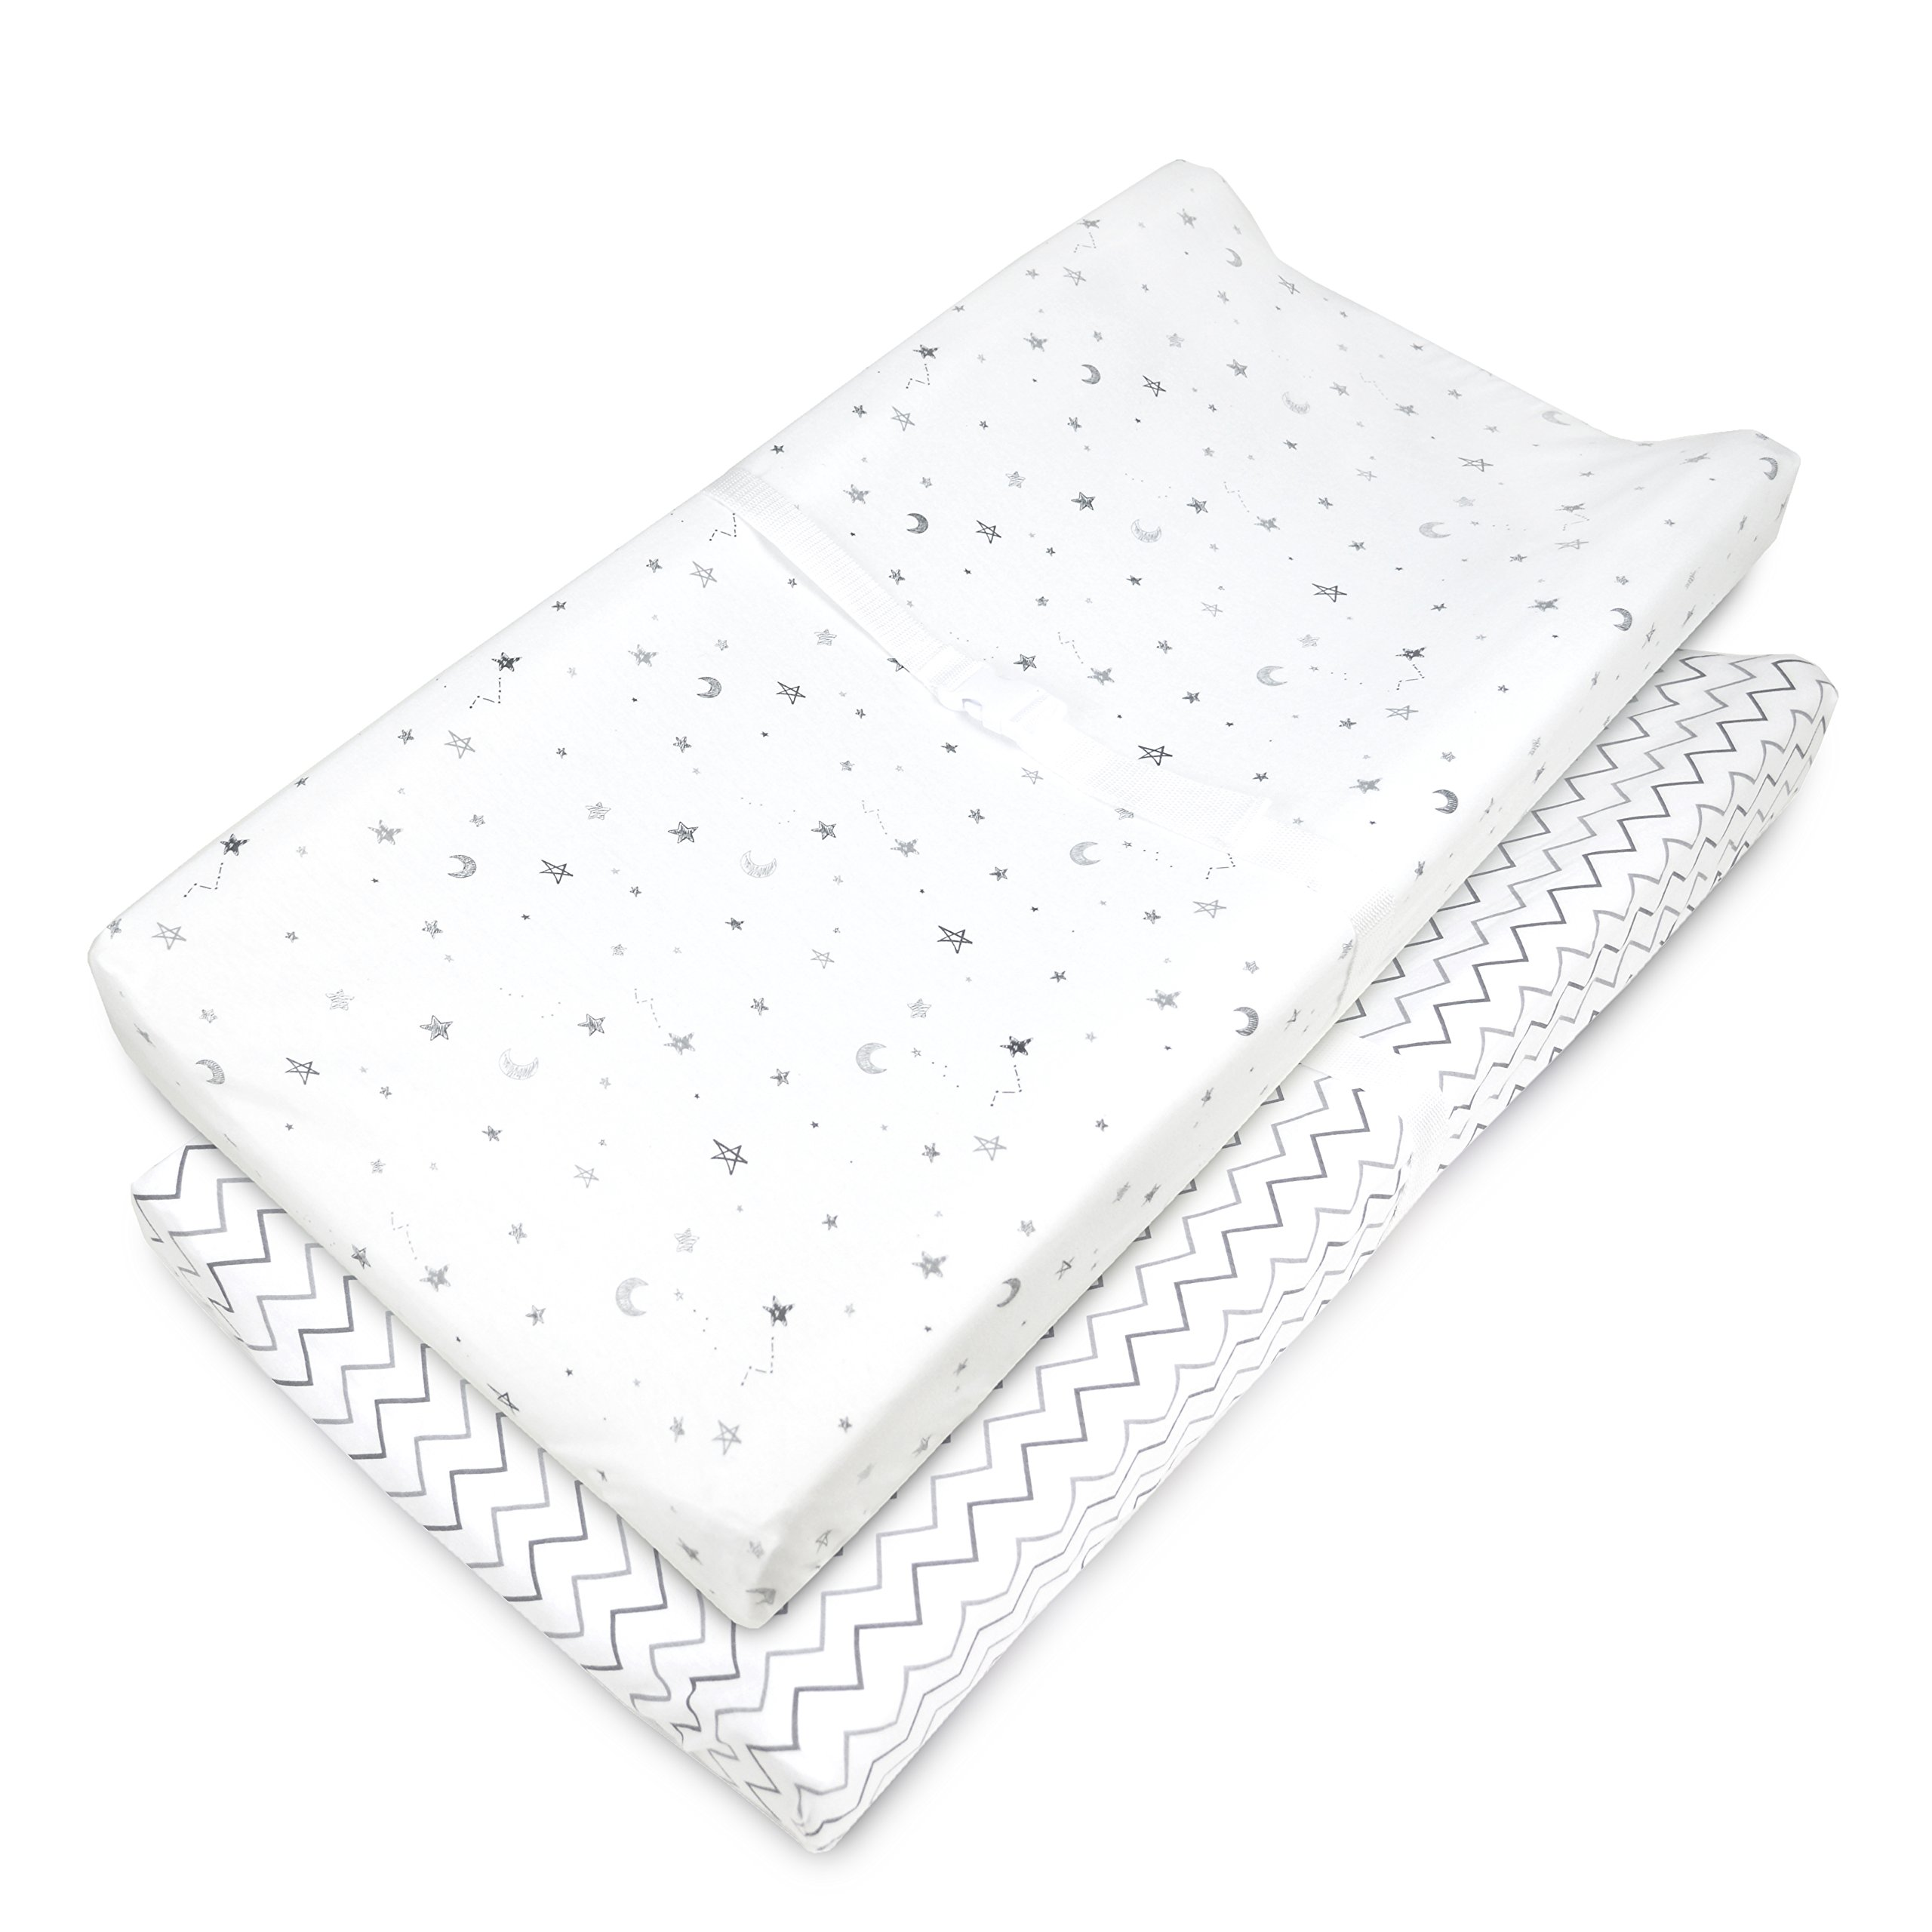 American Baby Company 2 Piece Printed 100% Cotton Jersey Knit Fitted Contoured Changing Table Pad Cover, also works with Travel Lite Mattress, Grey Stars and Zigzag